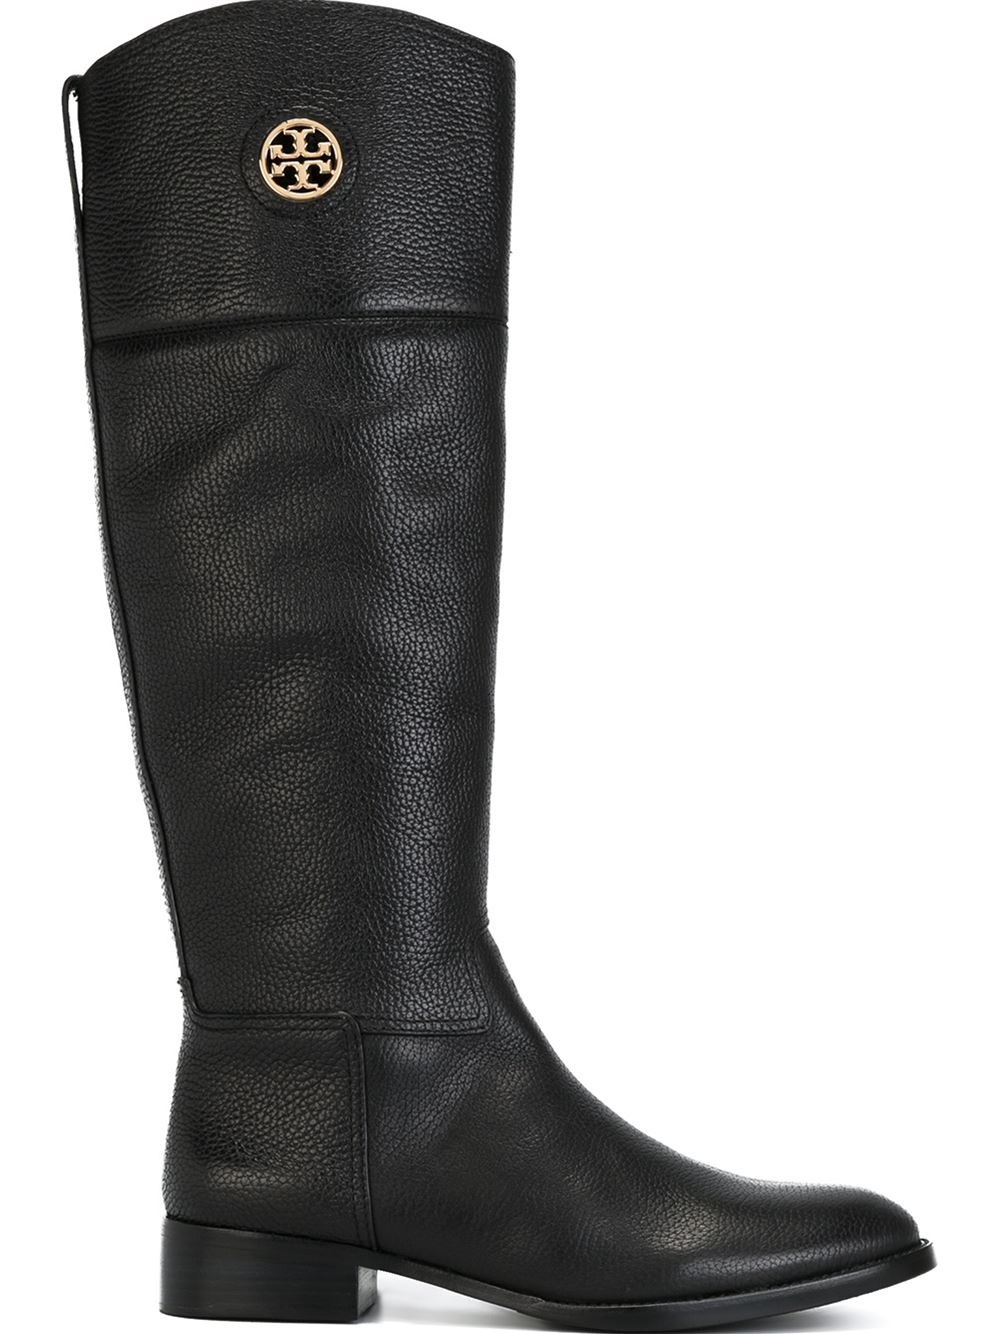 Tory Burch Knee High Boots In Black Lyst